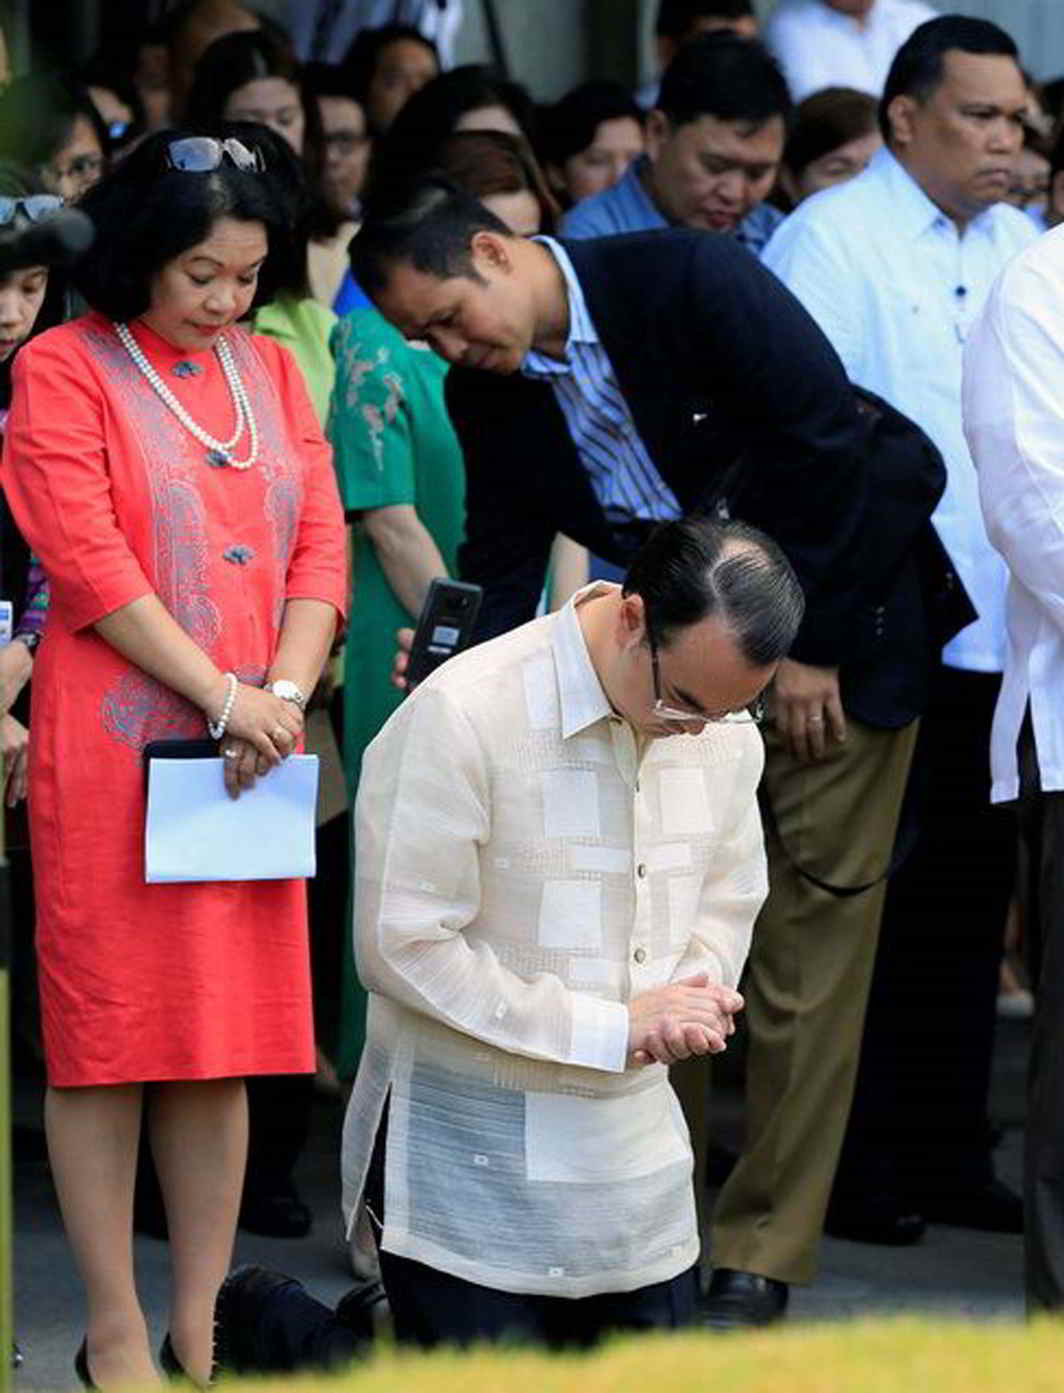 RESPECT: New Philippine foreign secretary Alan Peter Cayetano prays during a flag raising at the department of foreign affairs headquarters in Pasay City, Metro Manila, Philippines, Reuters/UNI